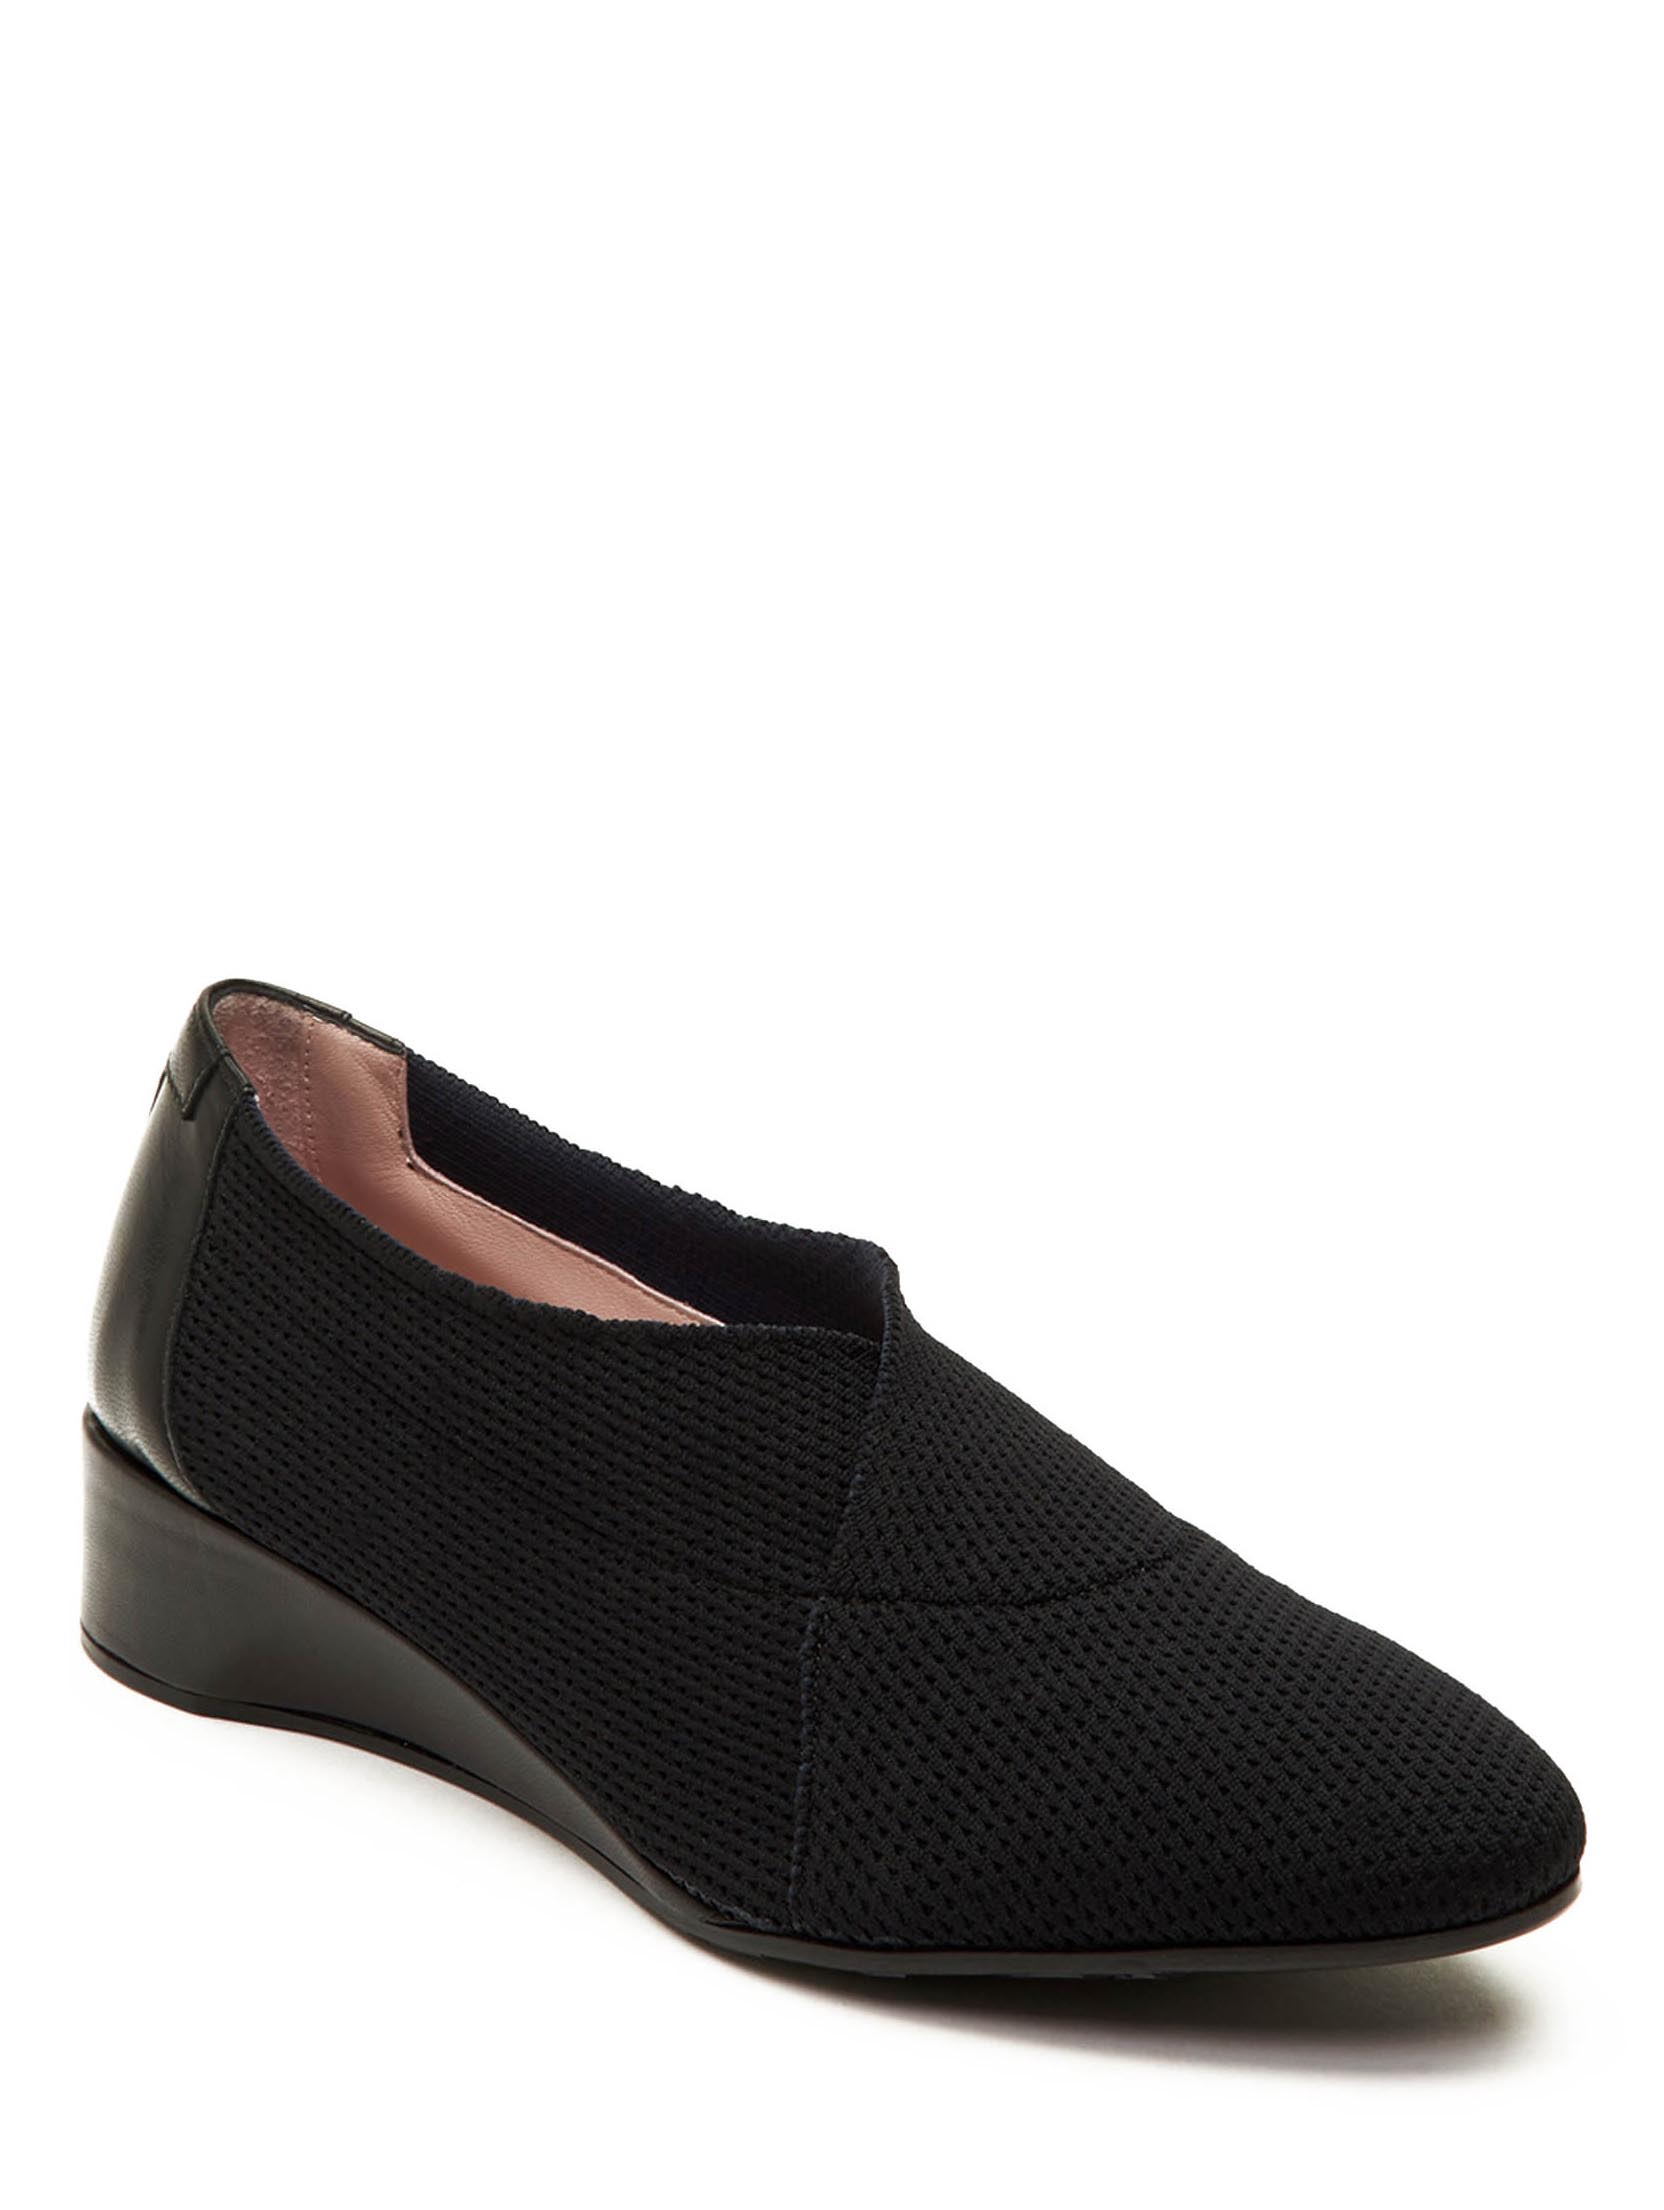 Taryn Rose Celeste Black Stretch Knit Wedge